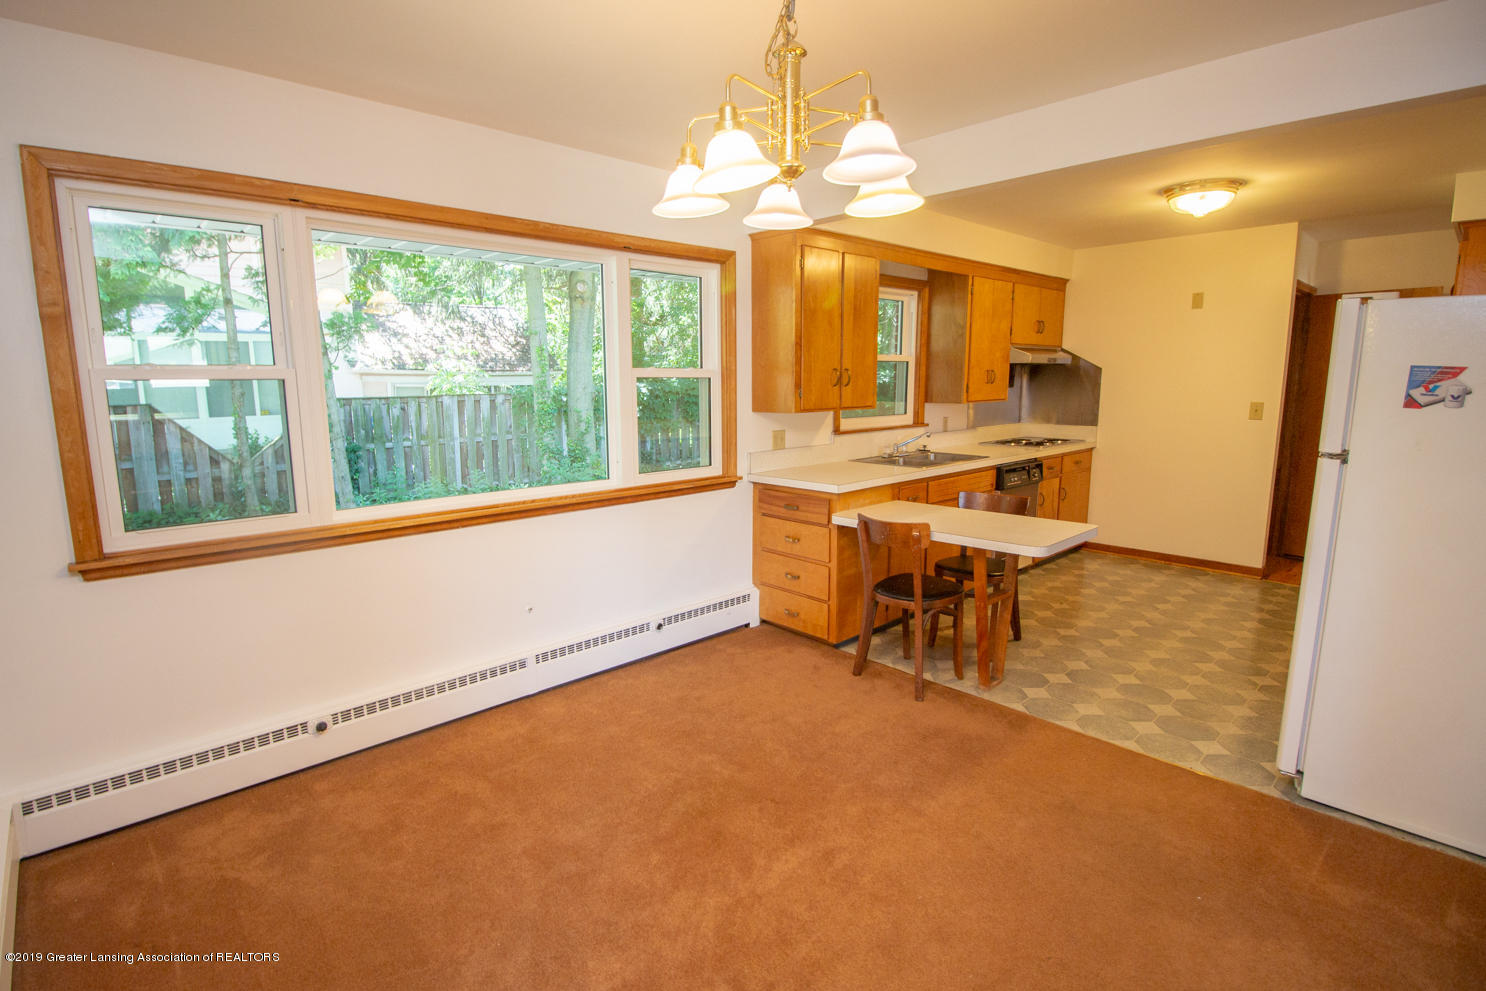 103 Oxford Rd - Kitchen/dining area - 11